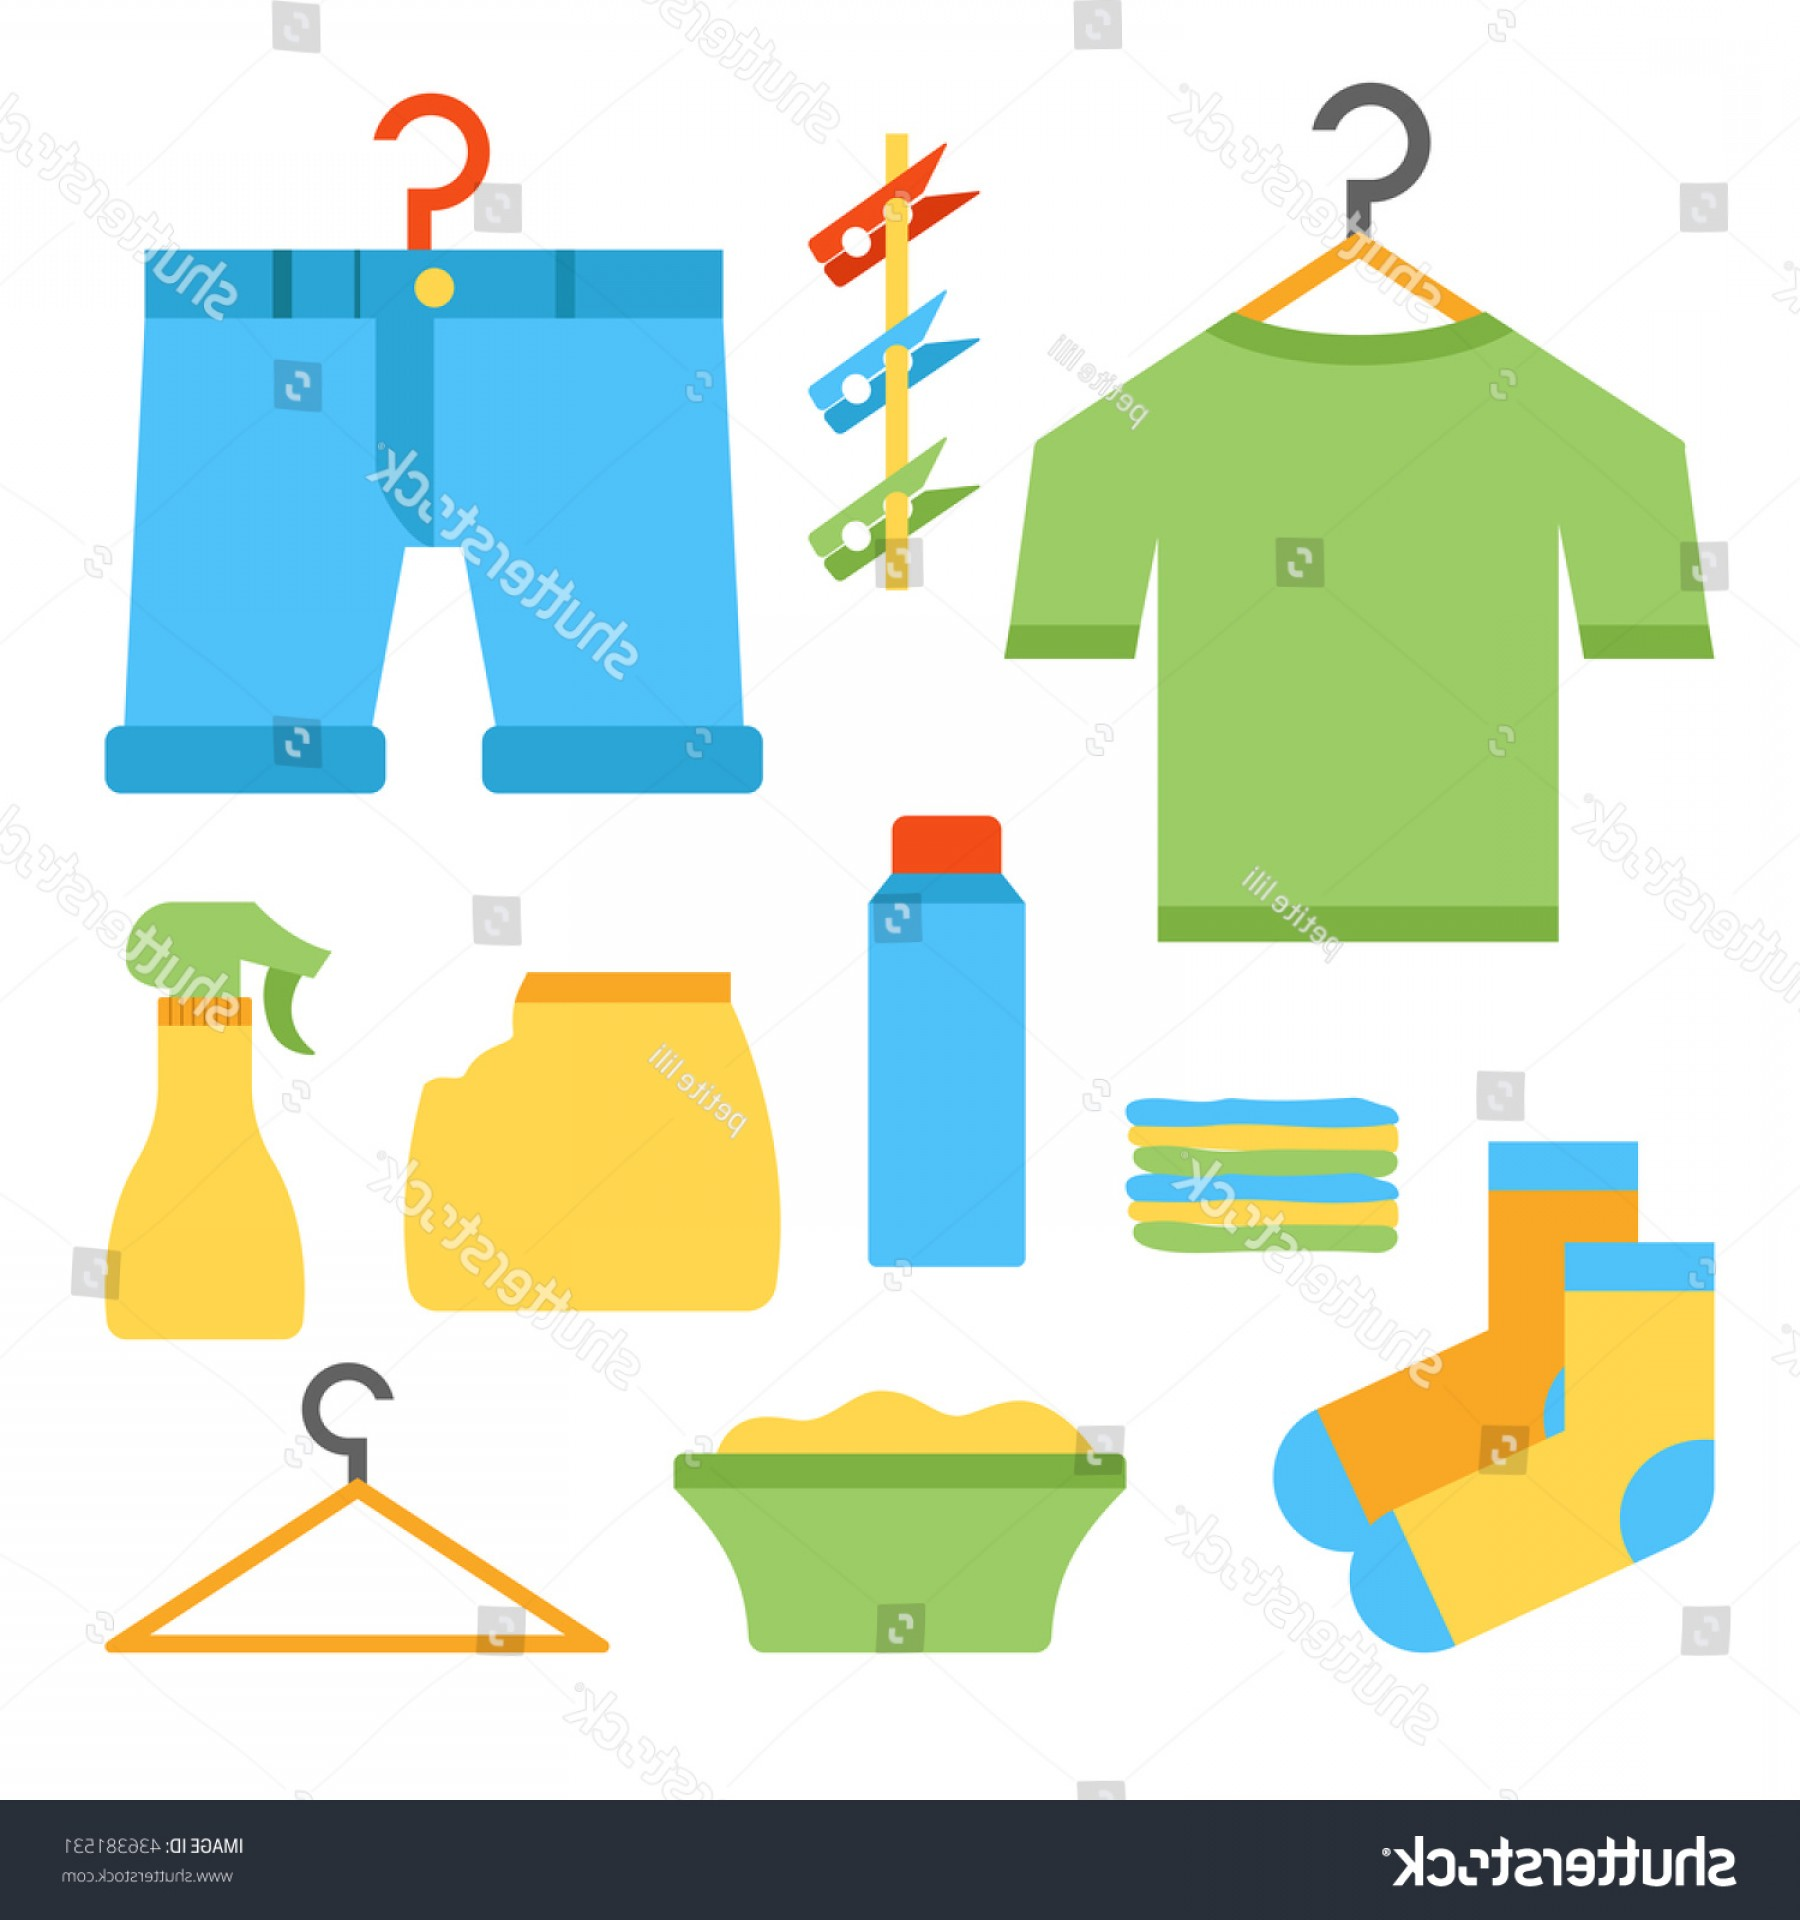 Powder Coating Vector Art: Vector Illustration Flat Laundry Room Objects